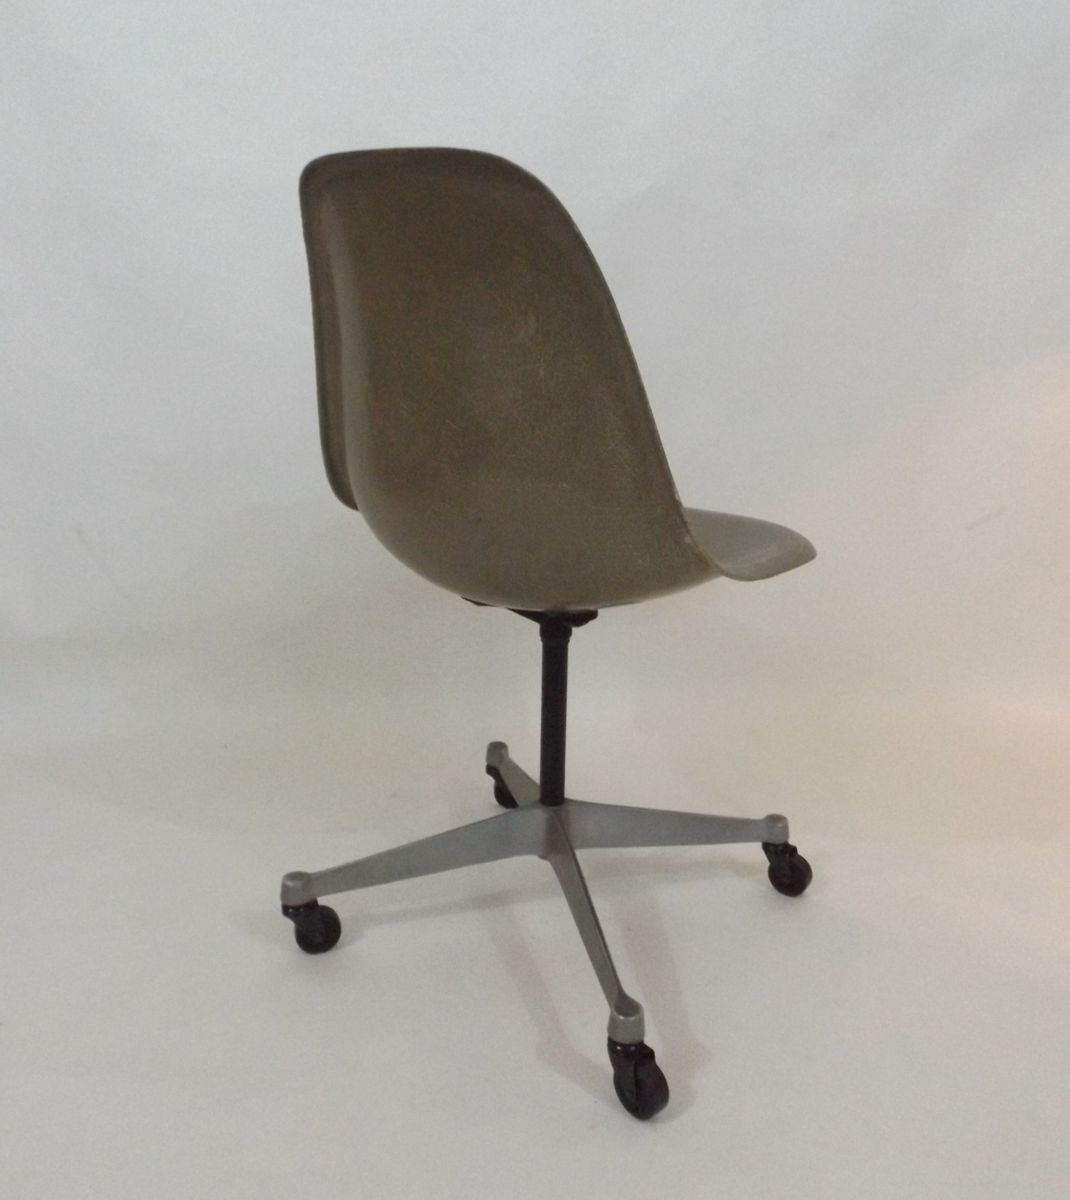 office chair by charles and ray eames for herman miller 1960s for sale at pamono. Black Bedroom Furniture Sets. Home Design Ideas